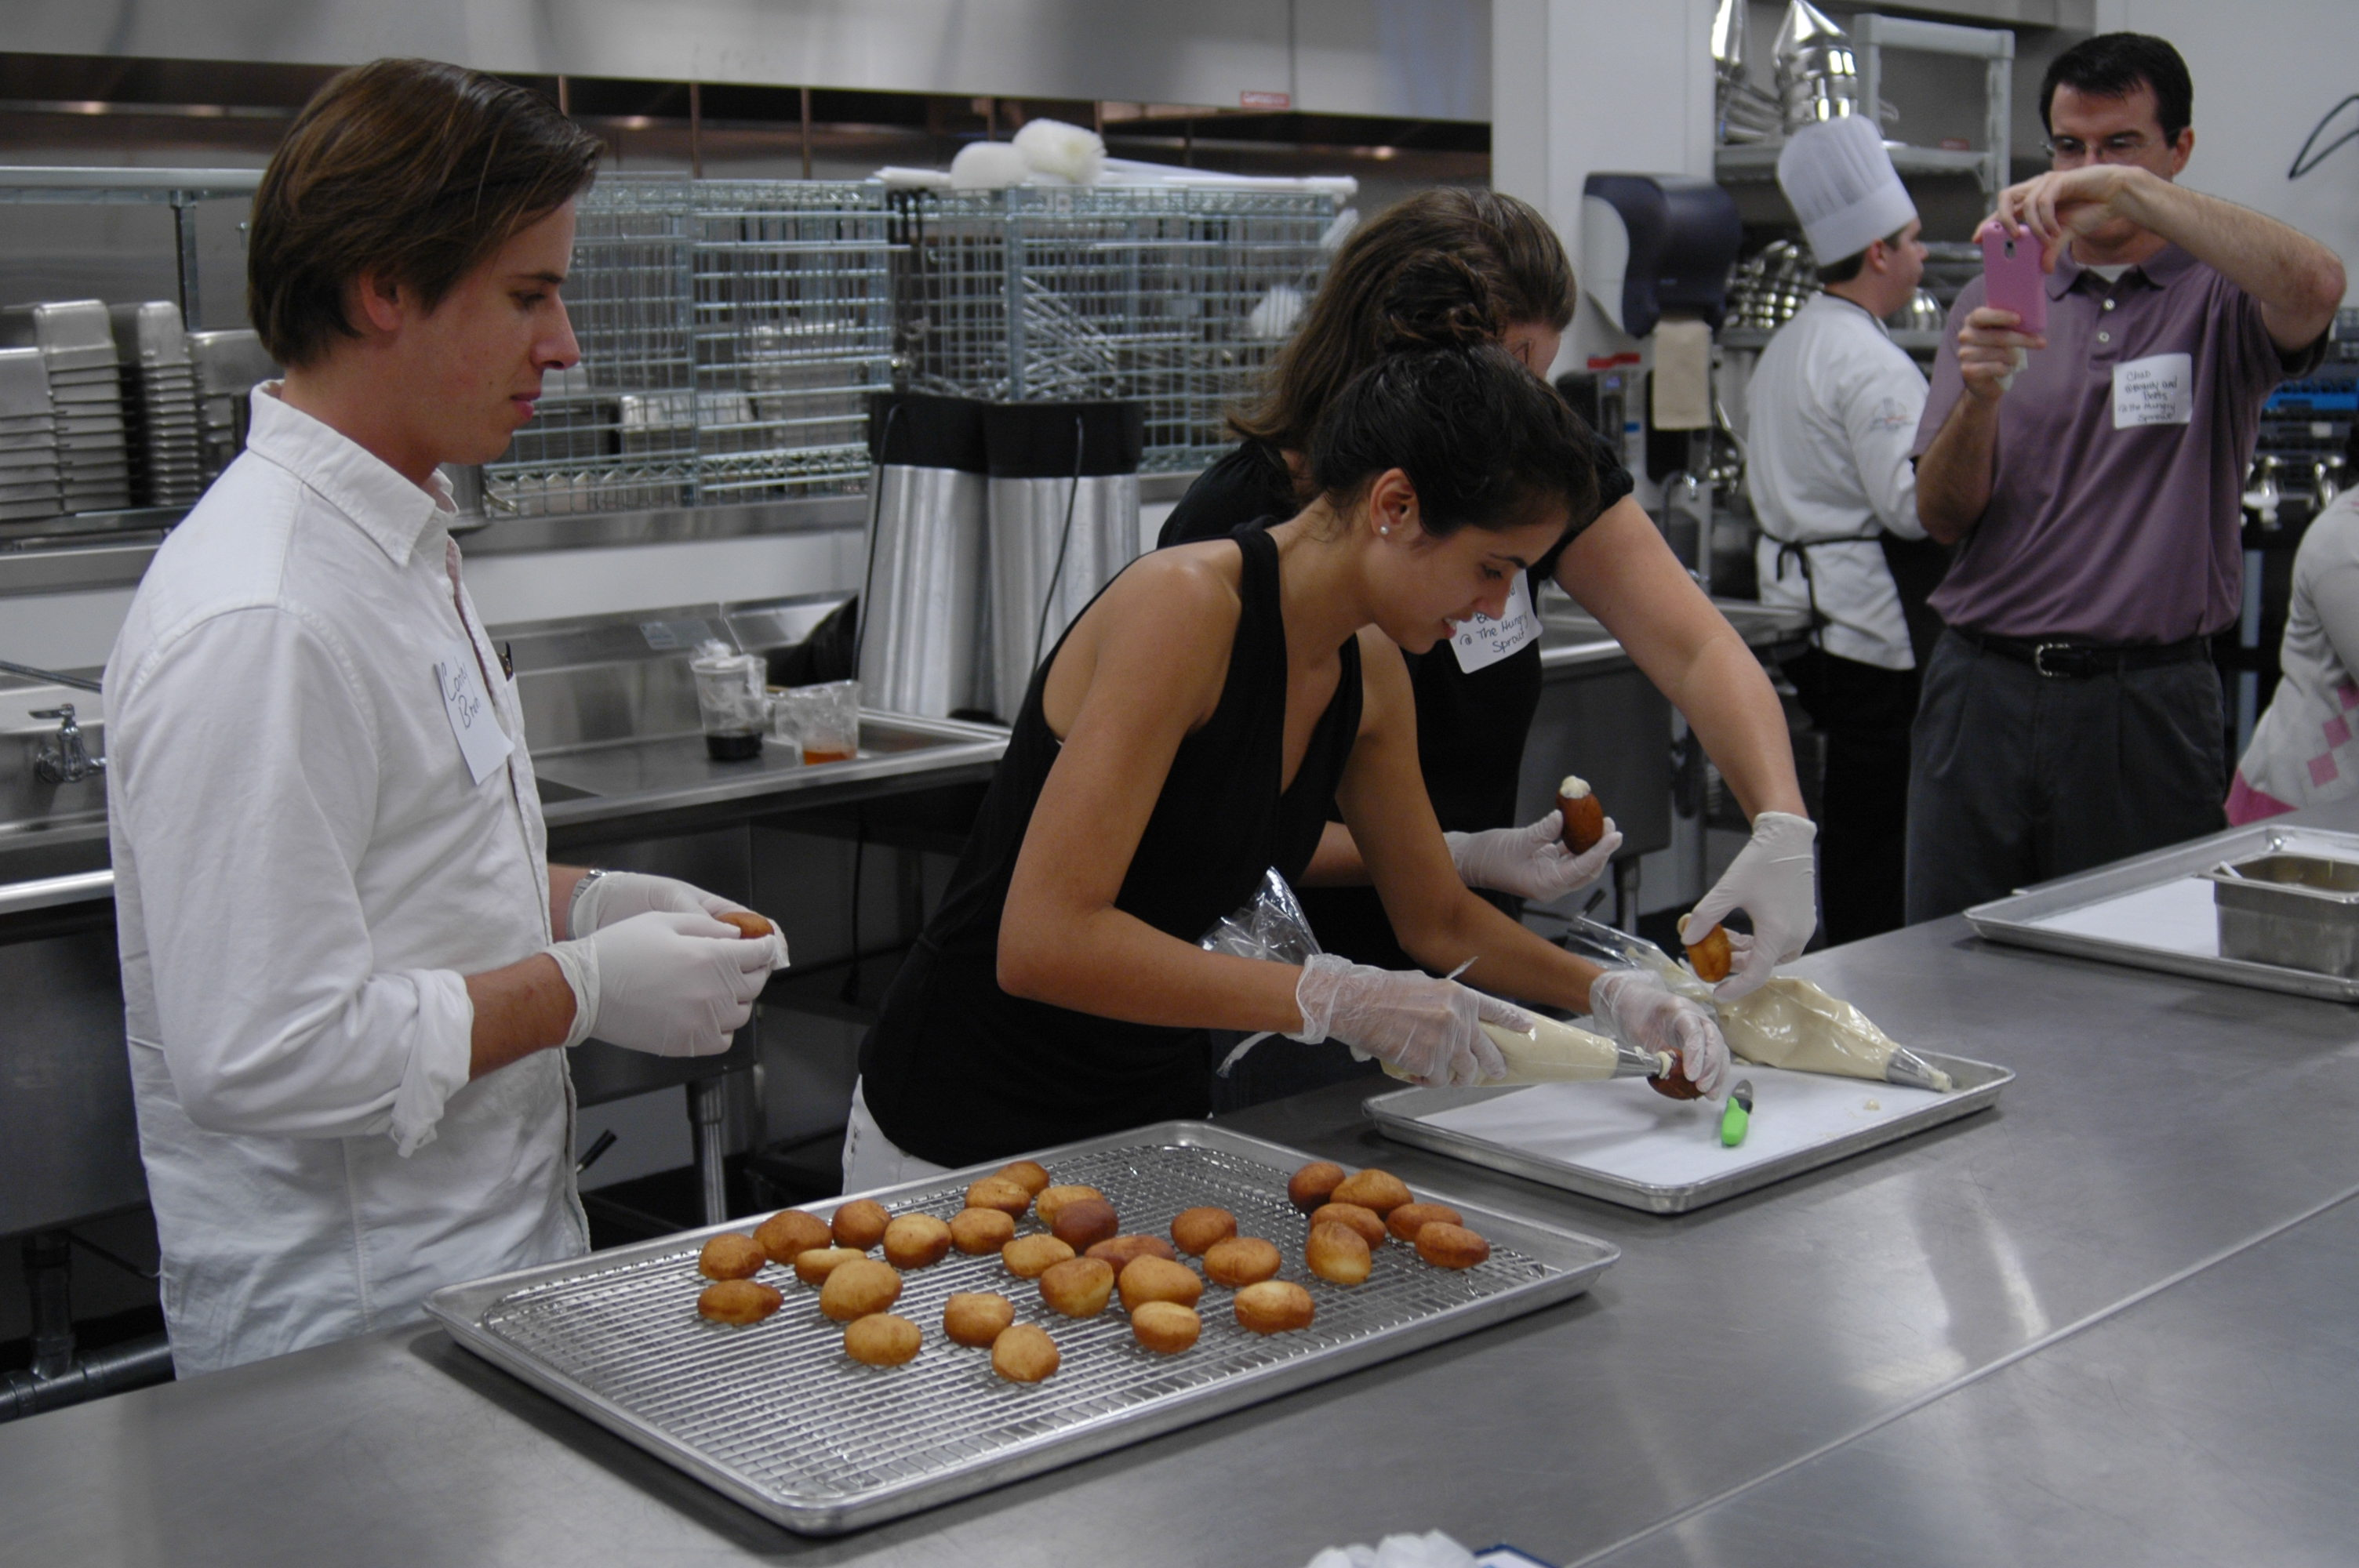 What Is The Significance Of Food Training Companies?